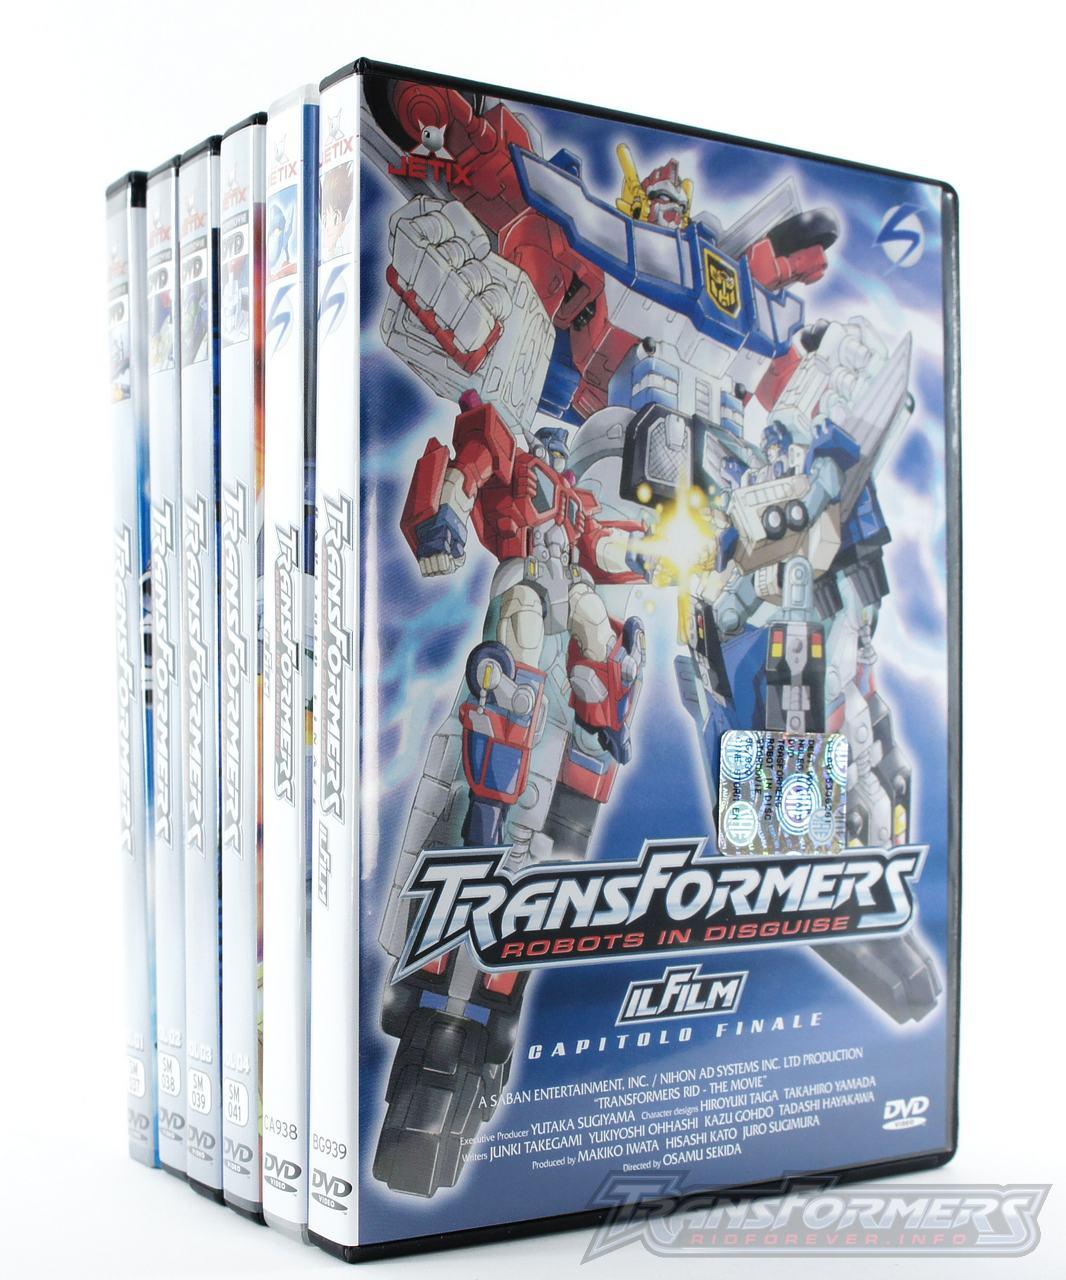 italian-robots-in-disguise-dvd-group